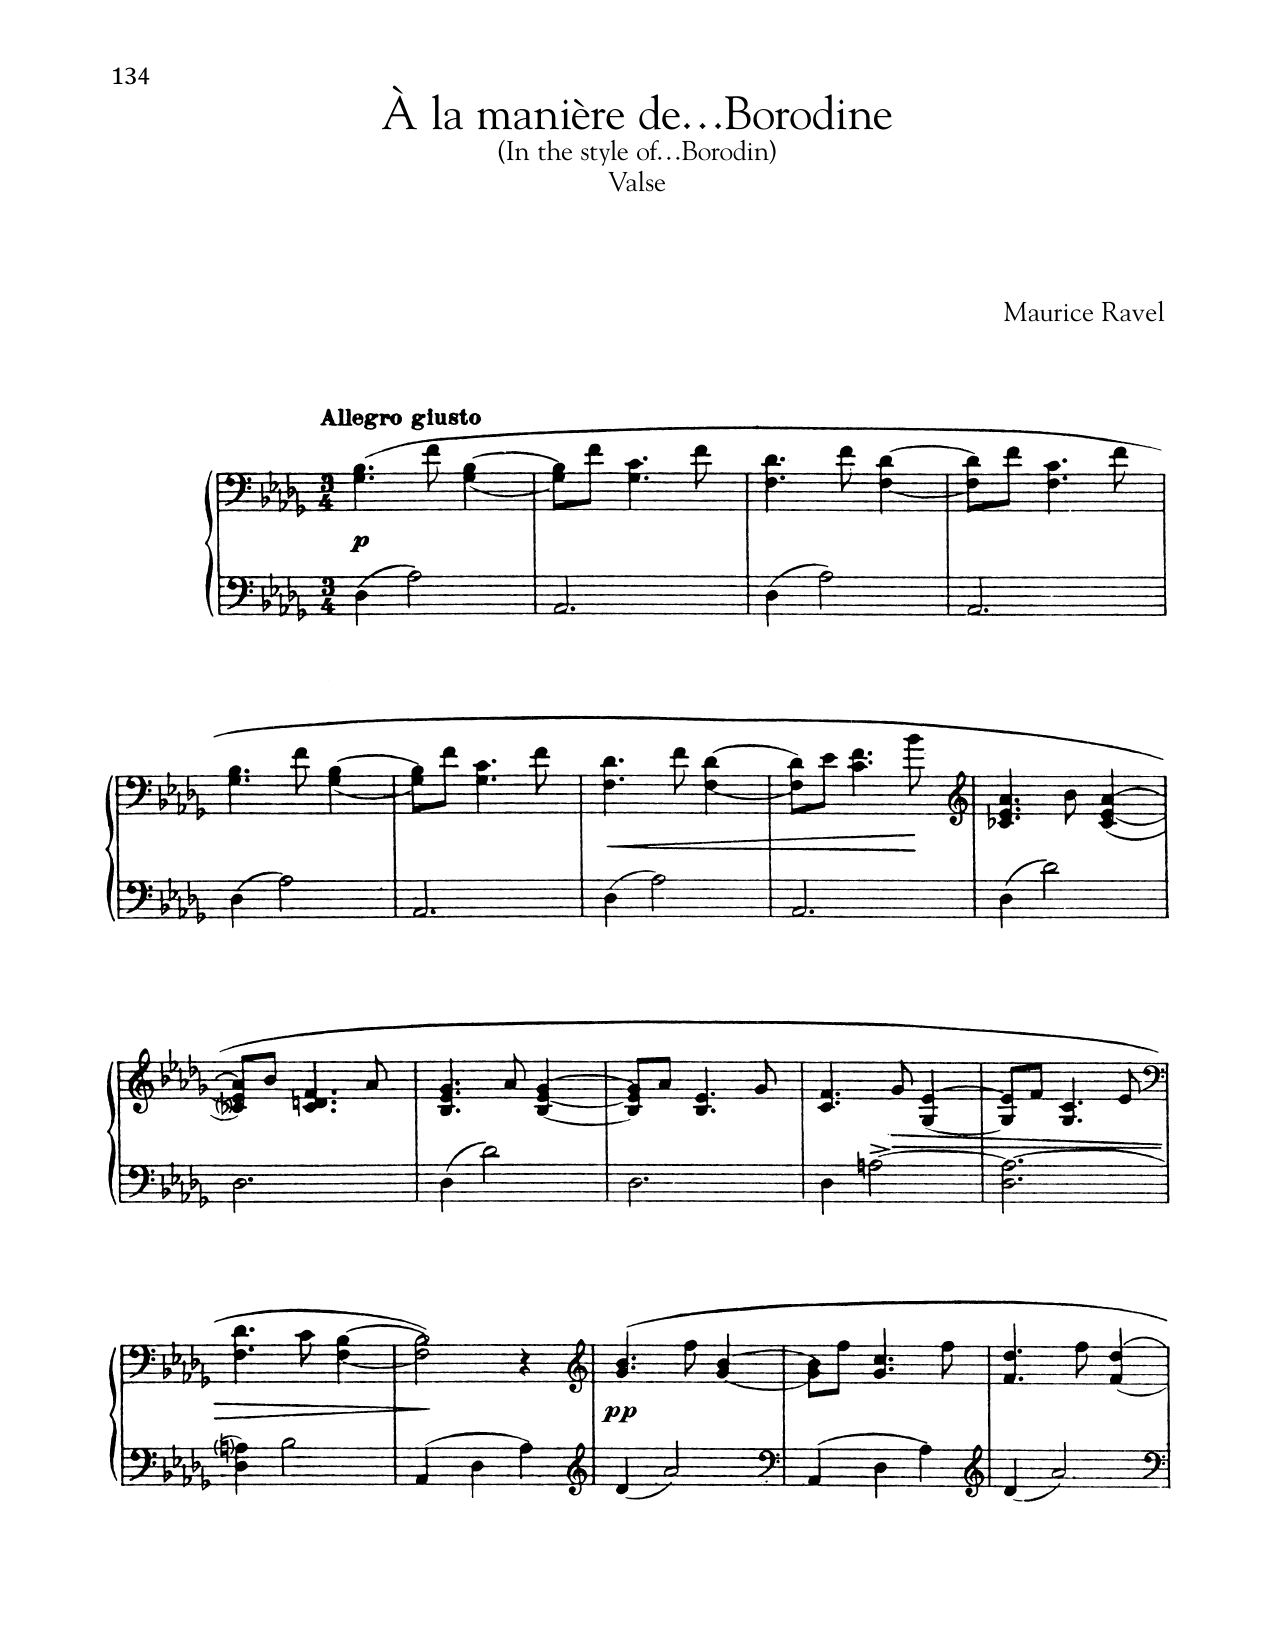 Download Maurice Ravel 'A La Maniere De Borodine (Valse)' Digital Sheet Music Notes & Chords and start playing in minutes